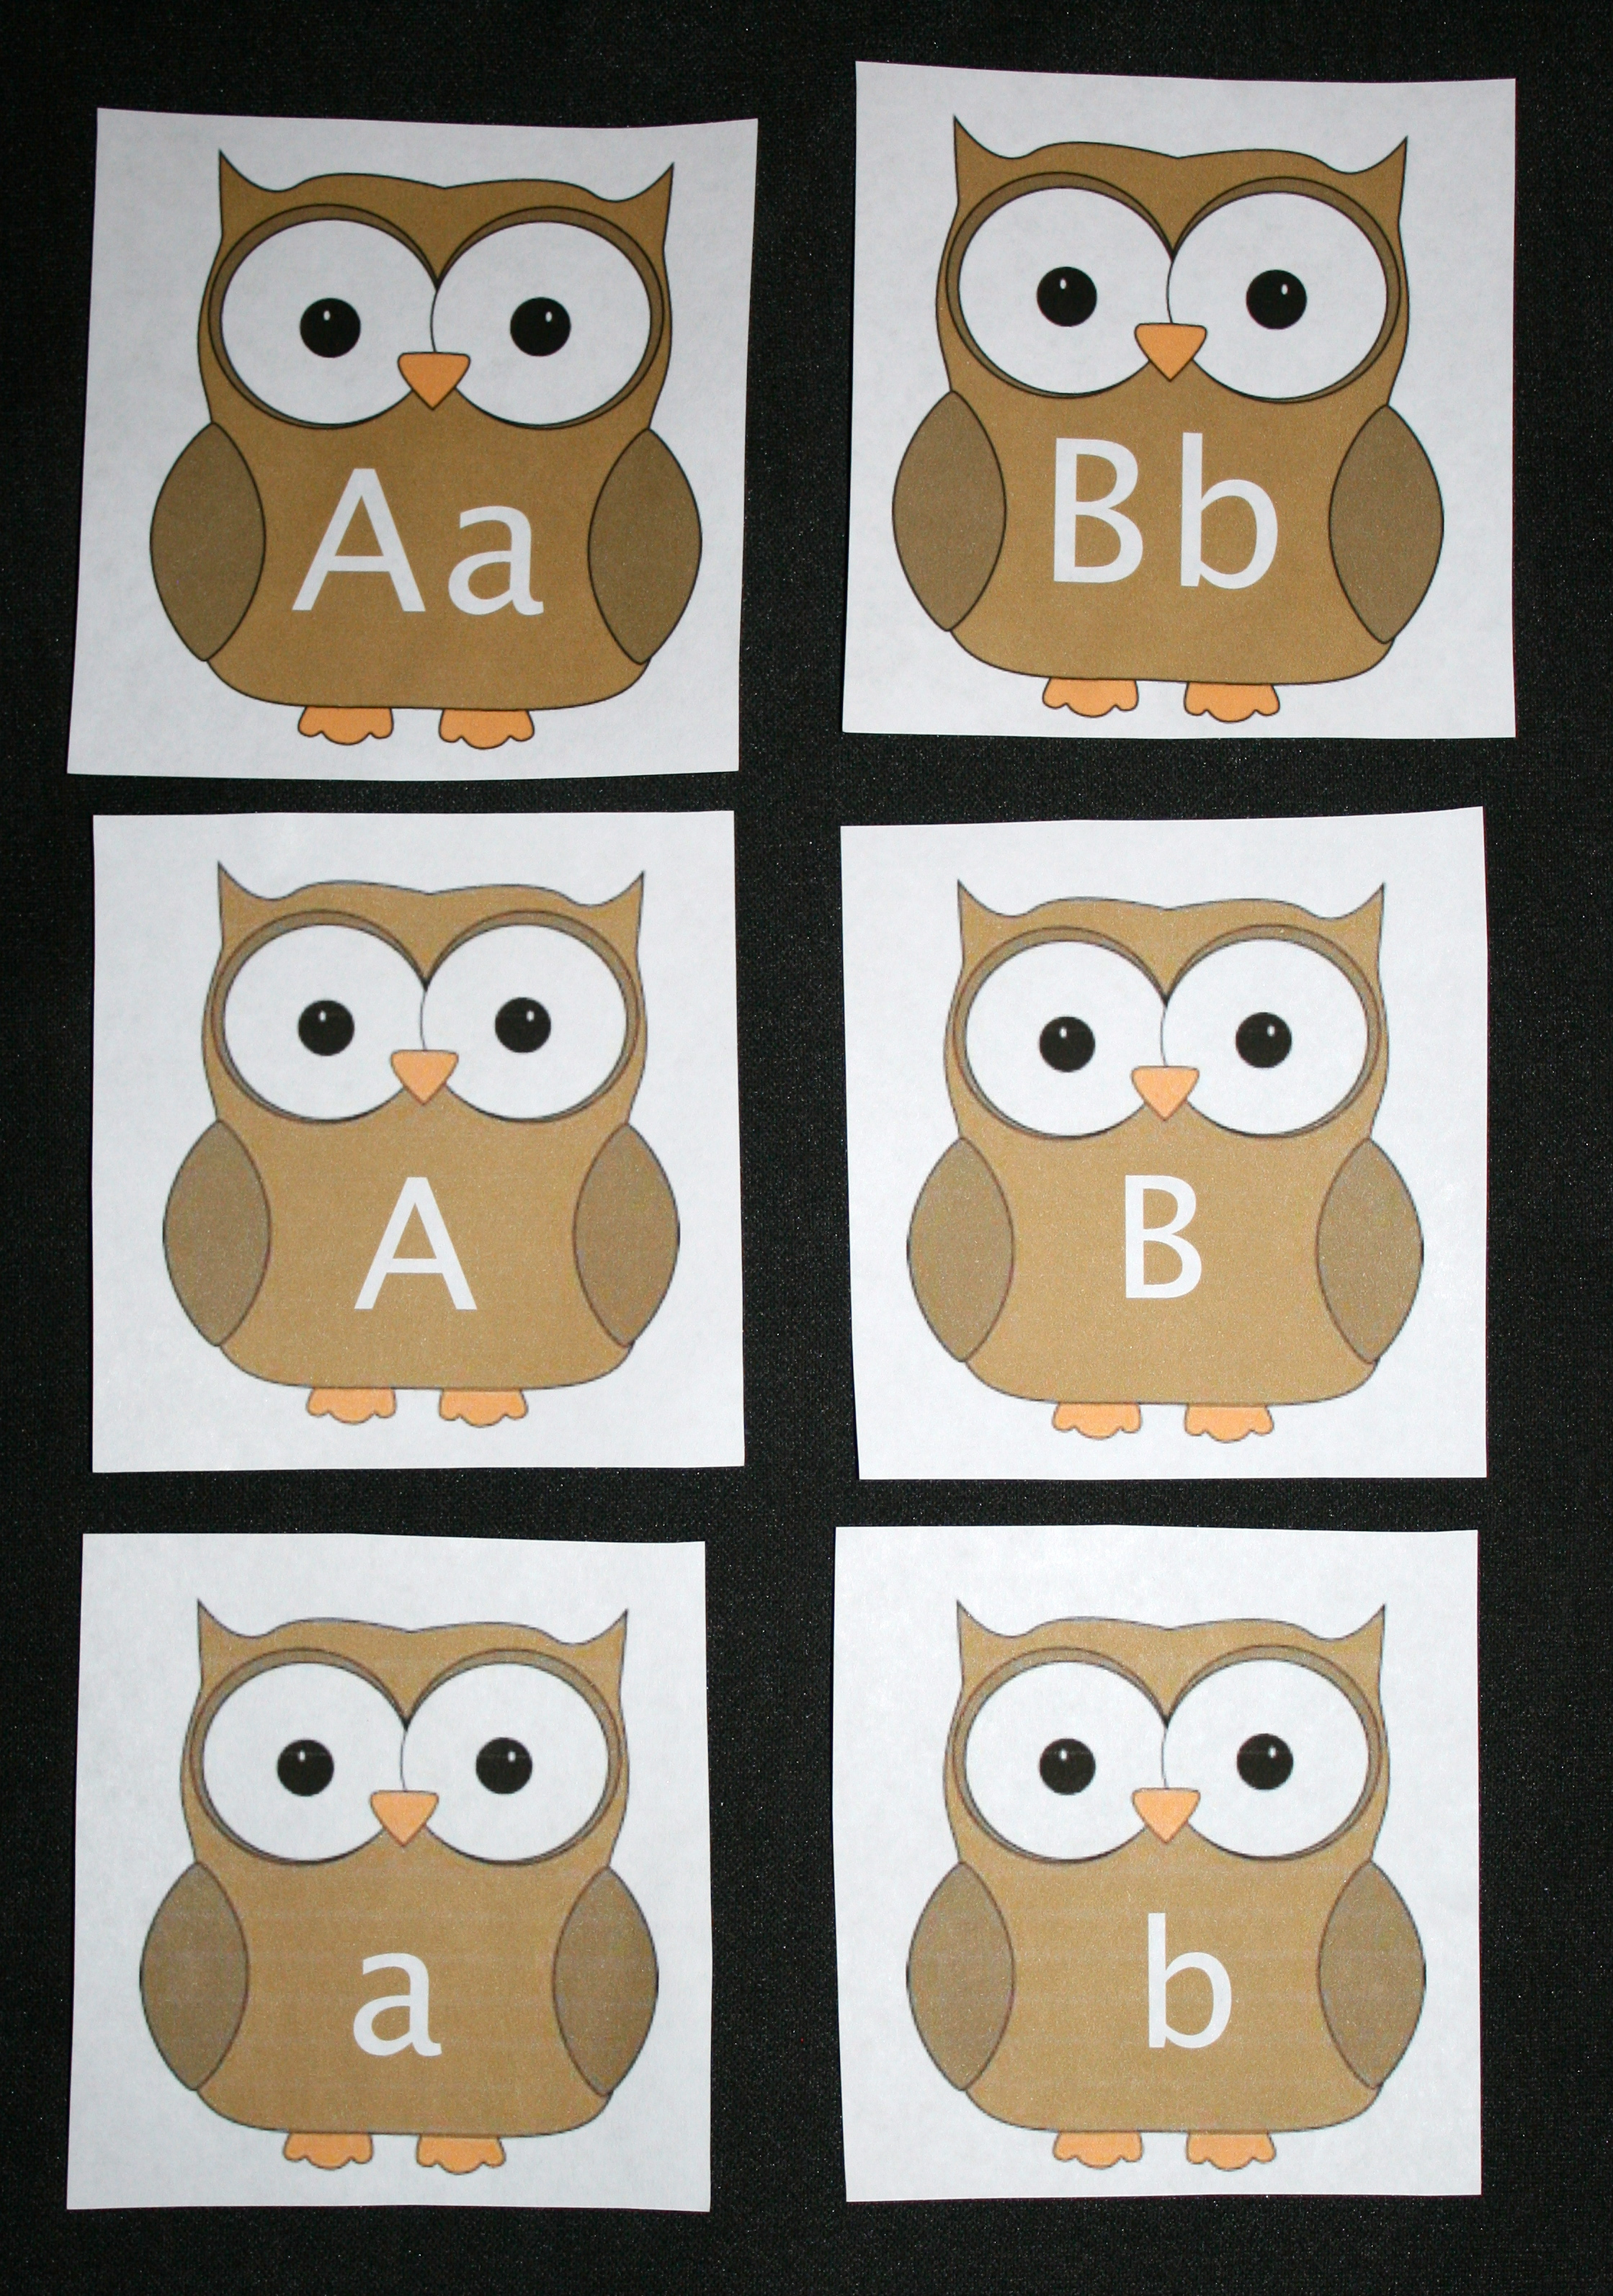 owl themed stuff, owl sayings, owl alphabet, owl alphabet cards, upper and lowercase owl alphabet cards, owl alphabet booklet, owl games, owl lessons, owl CVC words, owl daily 5 activities, owl number cards, owl number line, counting up to 100 day with owls, counting up to 100 day, owl number games, odd and even owl games, odd and even games, i have who has games, memory concentration games with owls, owl games, matching upper and lower case letter games, counting up to 120 owl cards, counting up to 120 cards, number flashcards, letter flashcards, owl abc cards, owl number flashcards, owl alphabet flashcards,